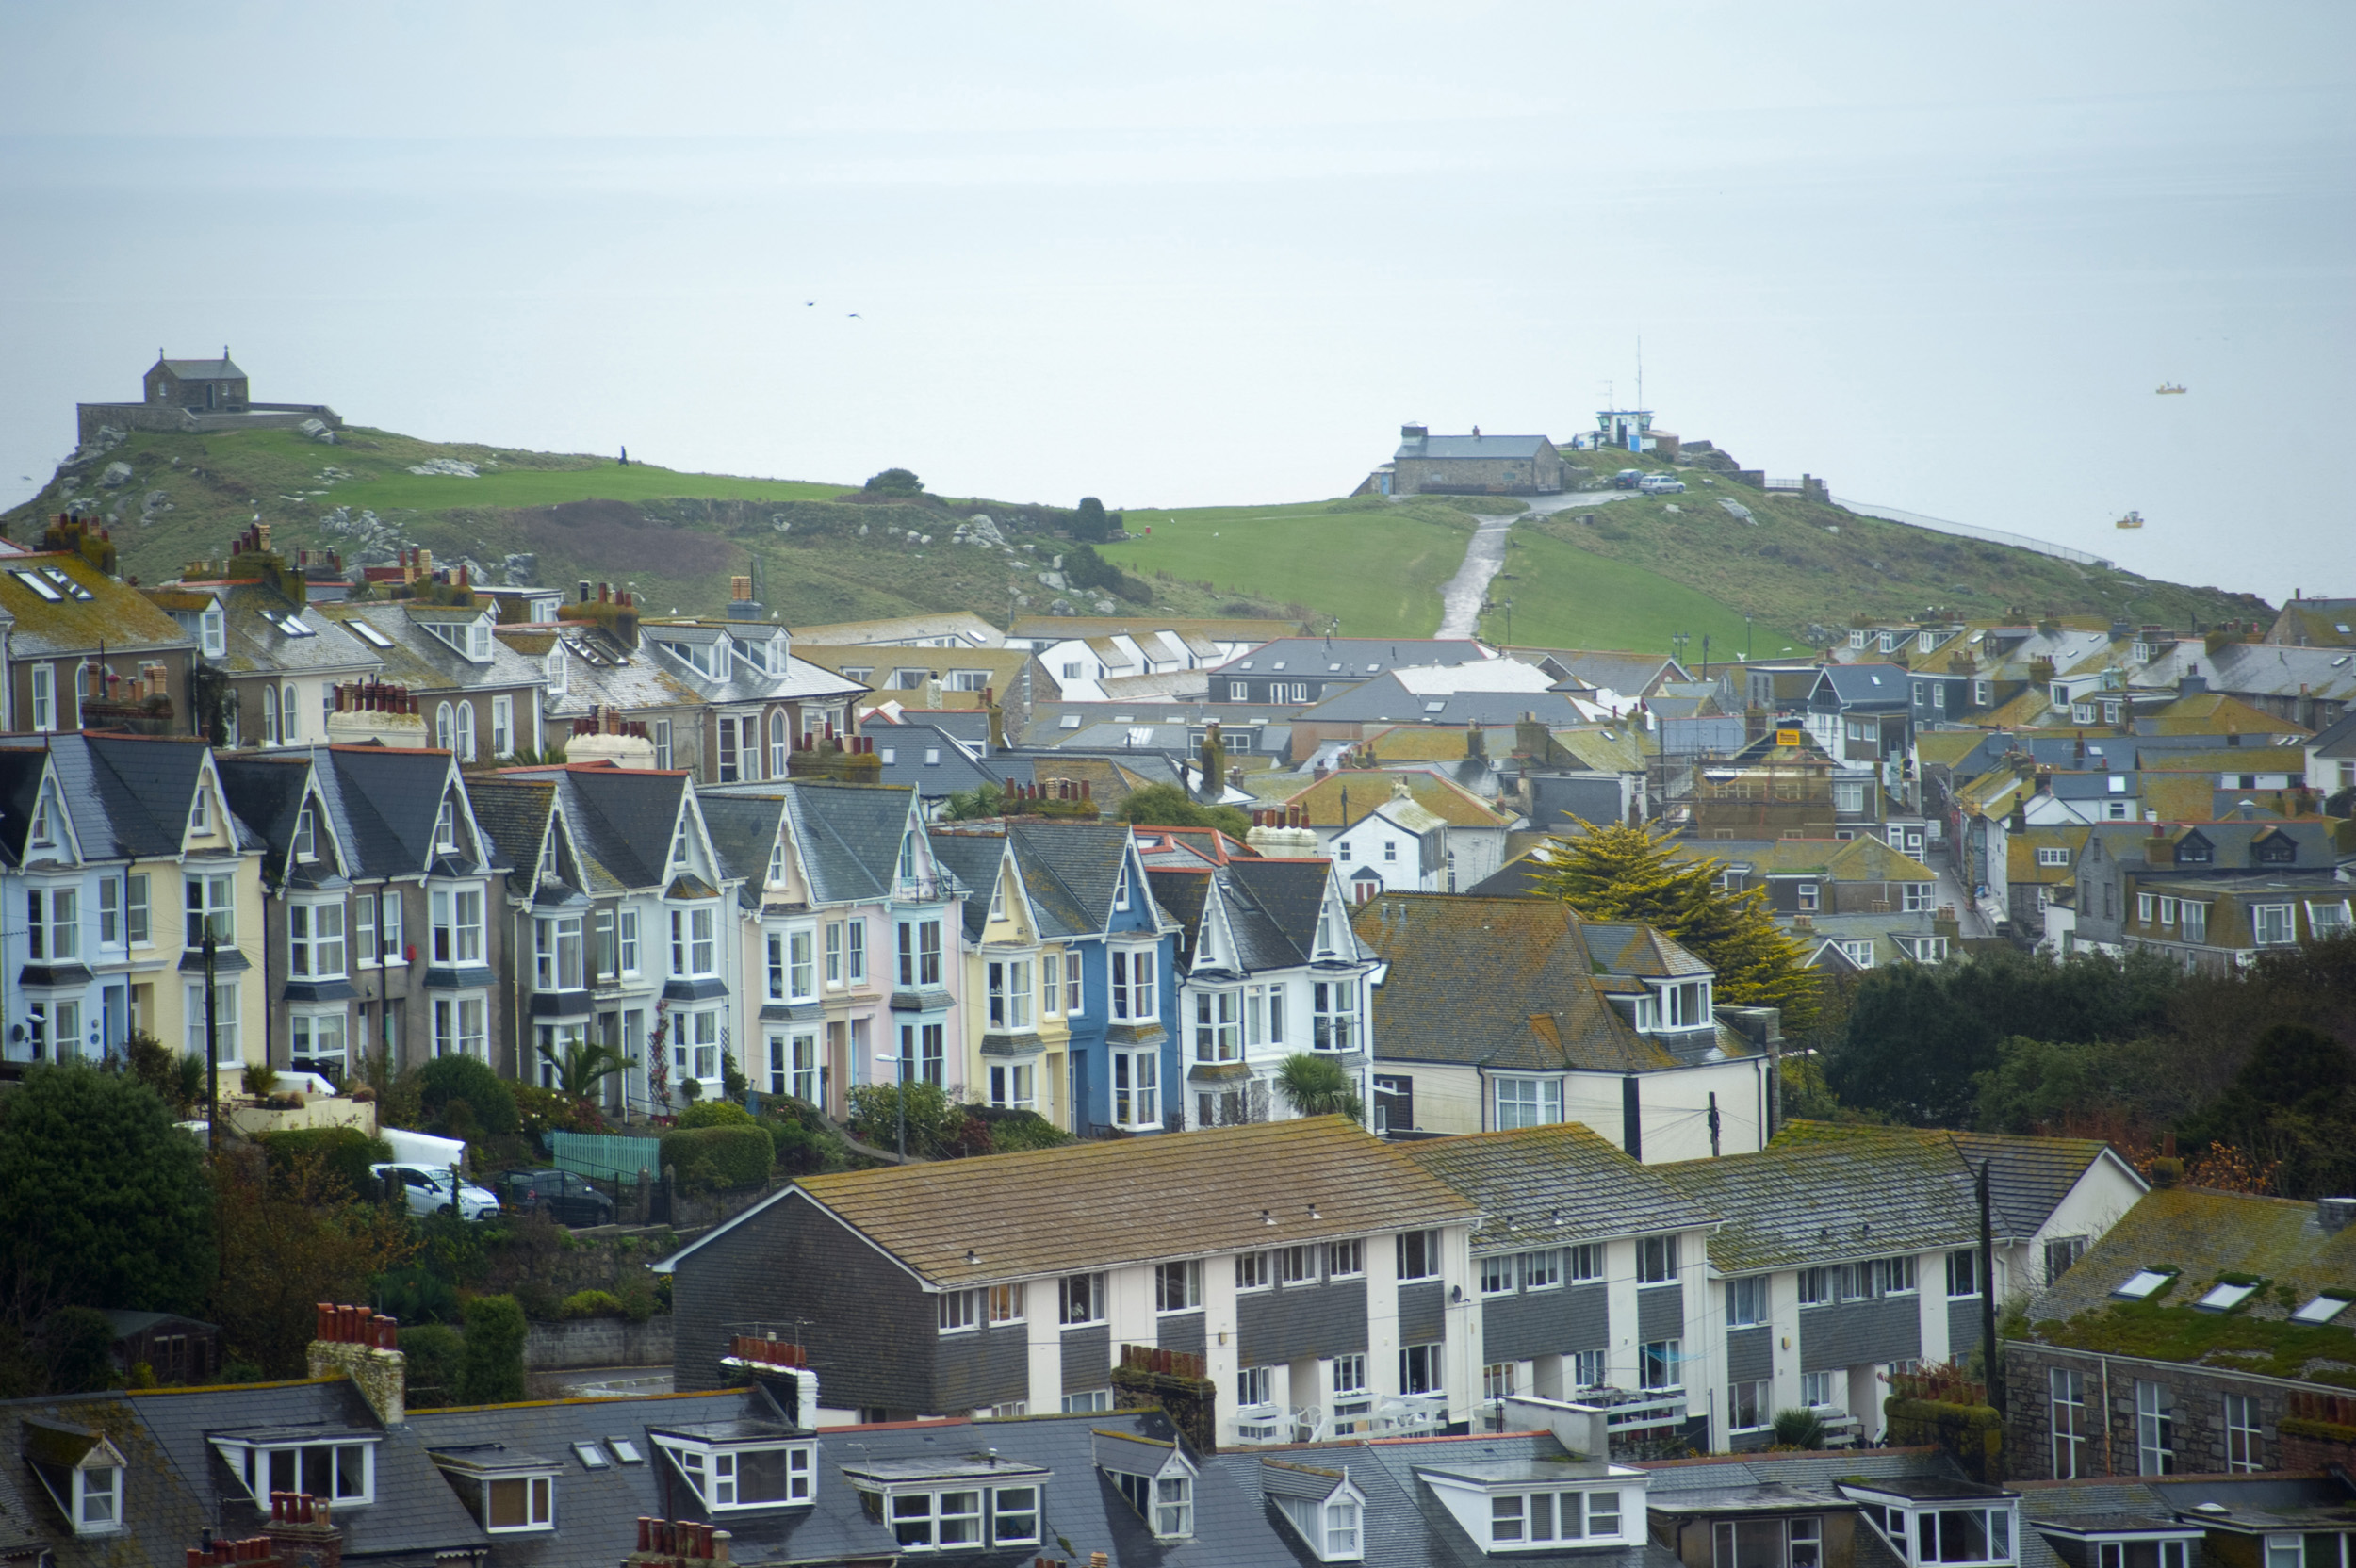 rows of old and new houses in the cornish town of st ives, Chapel of St Nicholas and the watch station in the distance on a part of town known as The Island